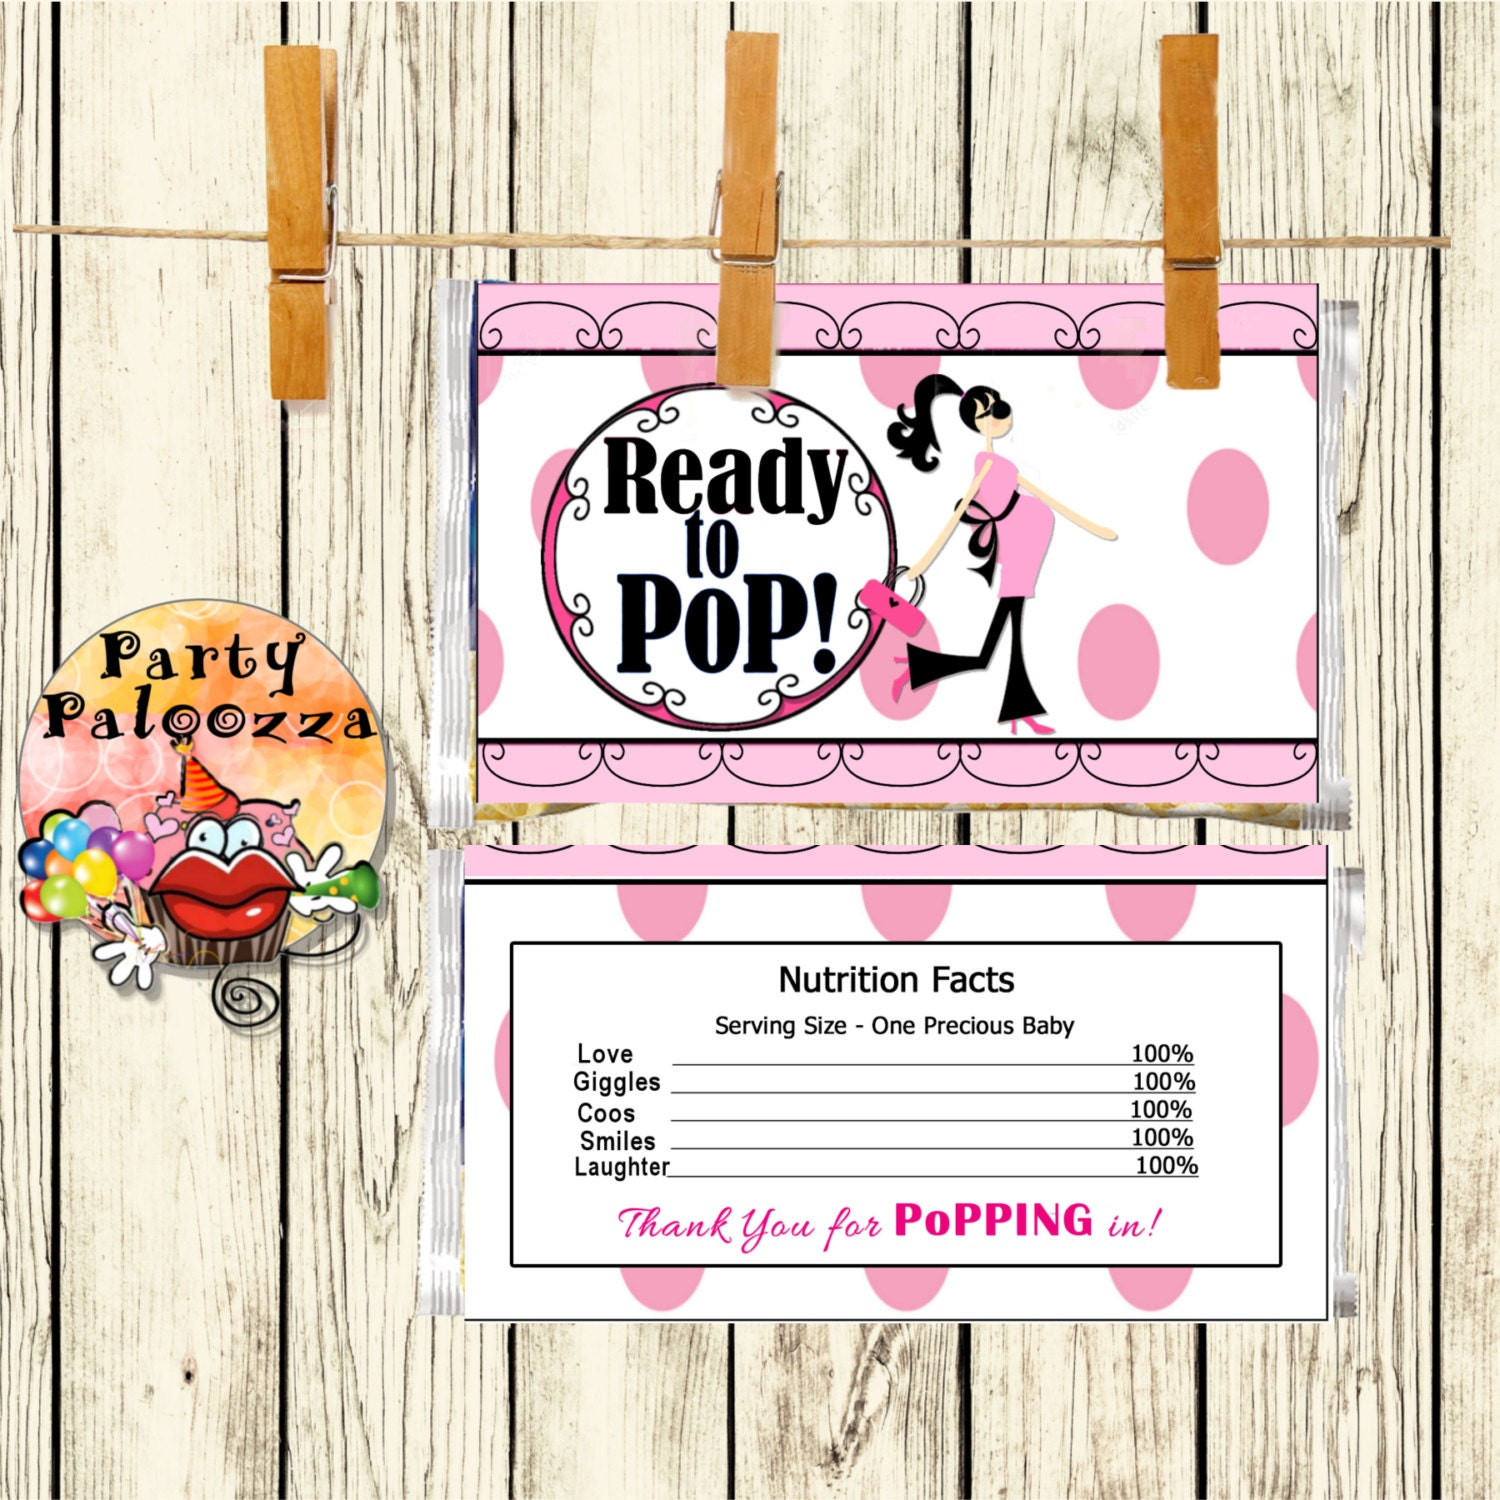 Popcorn wrapper template free gallery templates design ideas baby shower popcorn labels gallery baby showers decoration ideas baby shower candy wrappers templates free images pronofoot35fo Choice Image